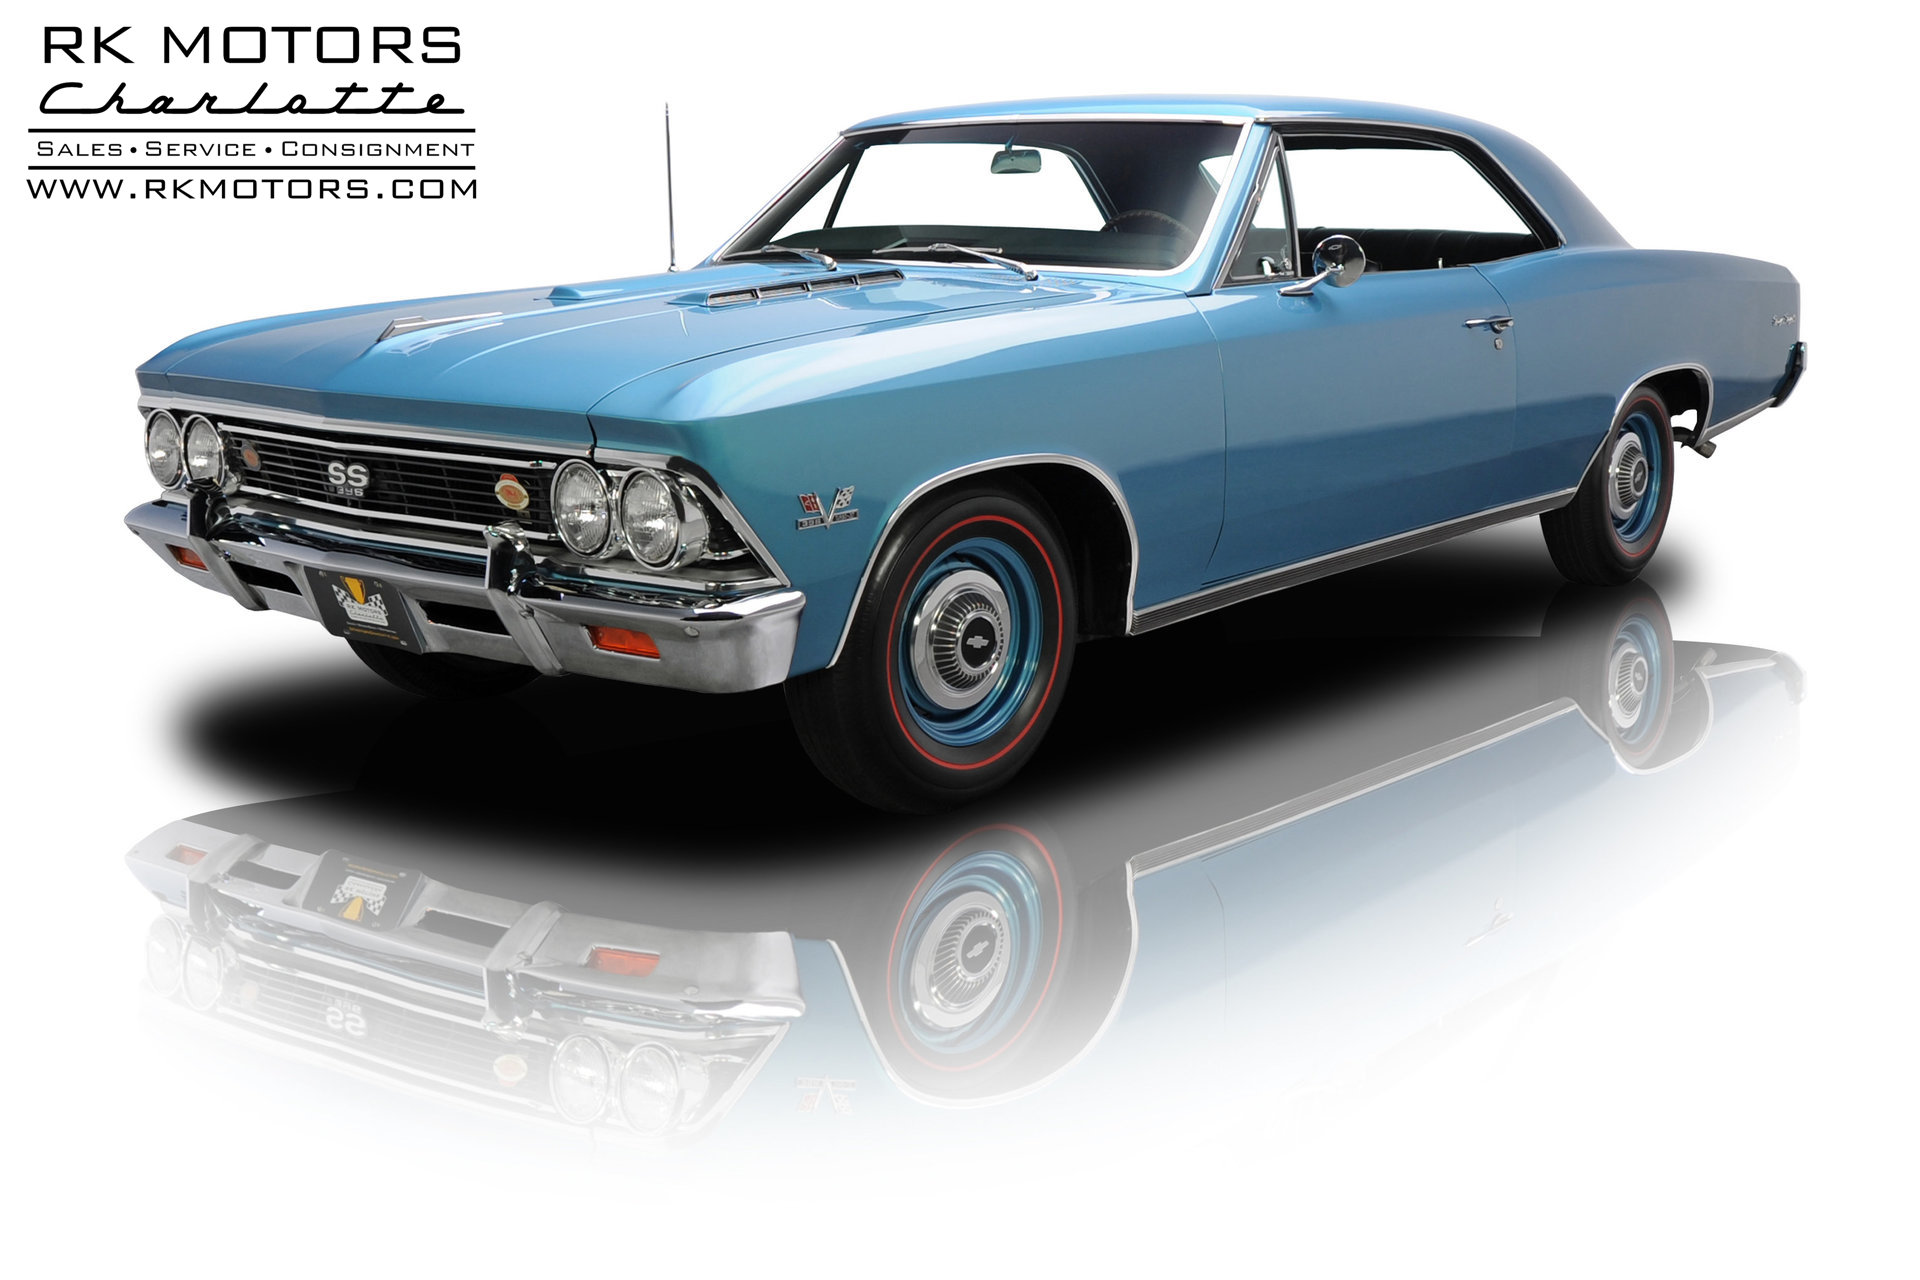 133331 1966 Chevrolet Chevelle Rk Motors Classic And Performance Chevy Ss 396 For Sale